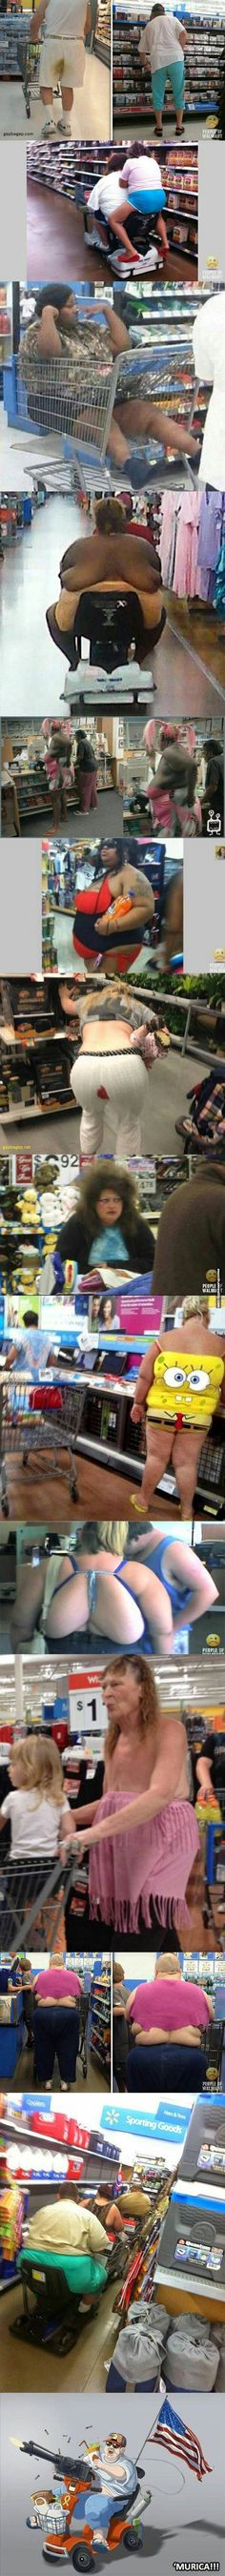 Top 15 Funniest Pictures Of People vs.Walmart